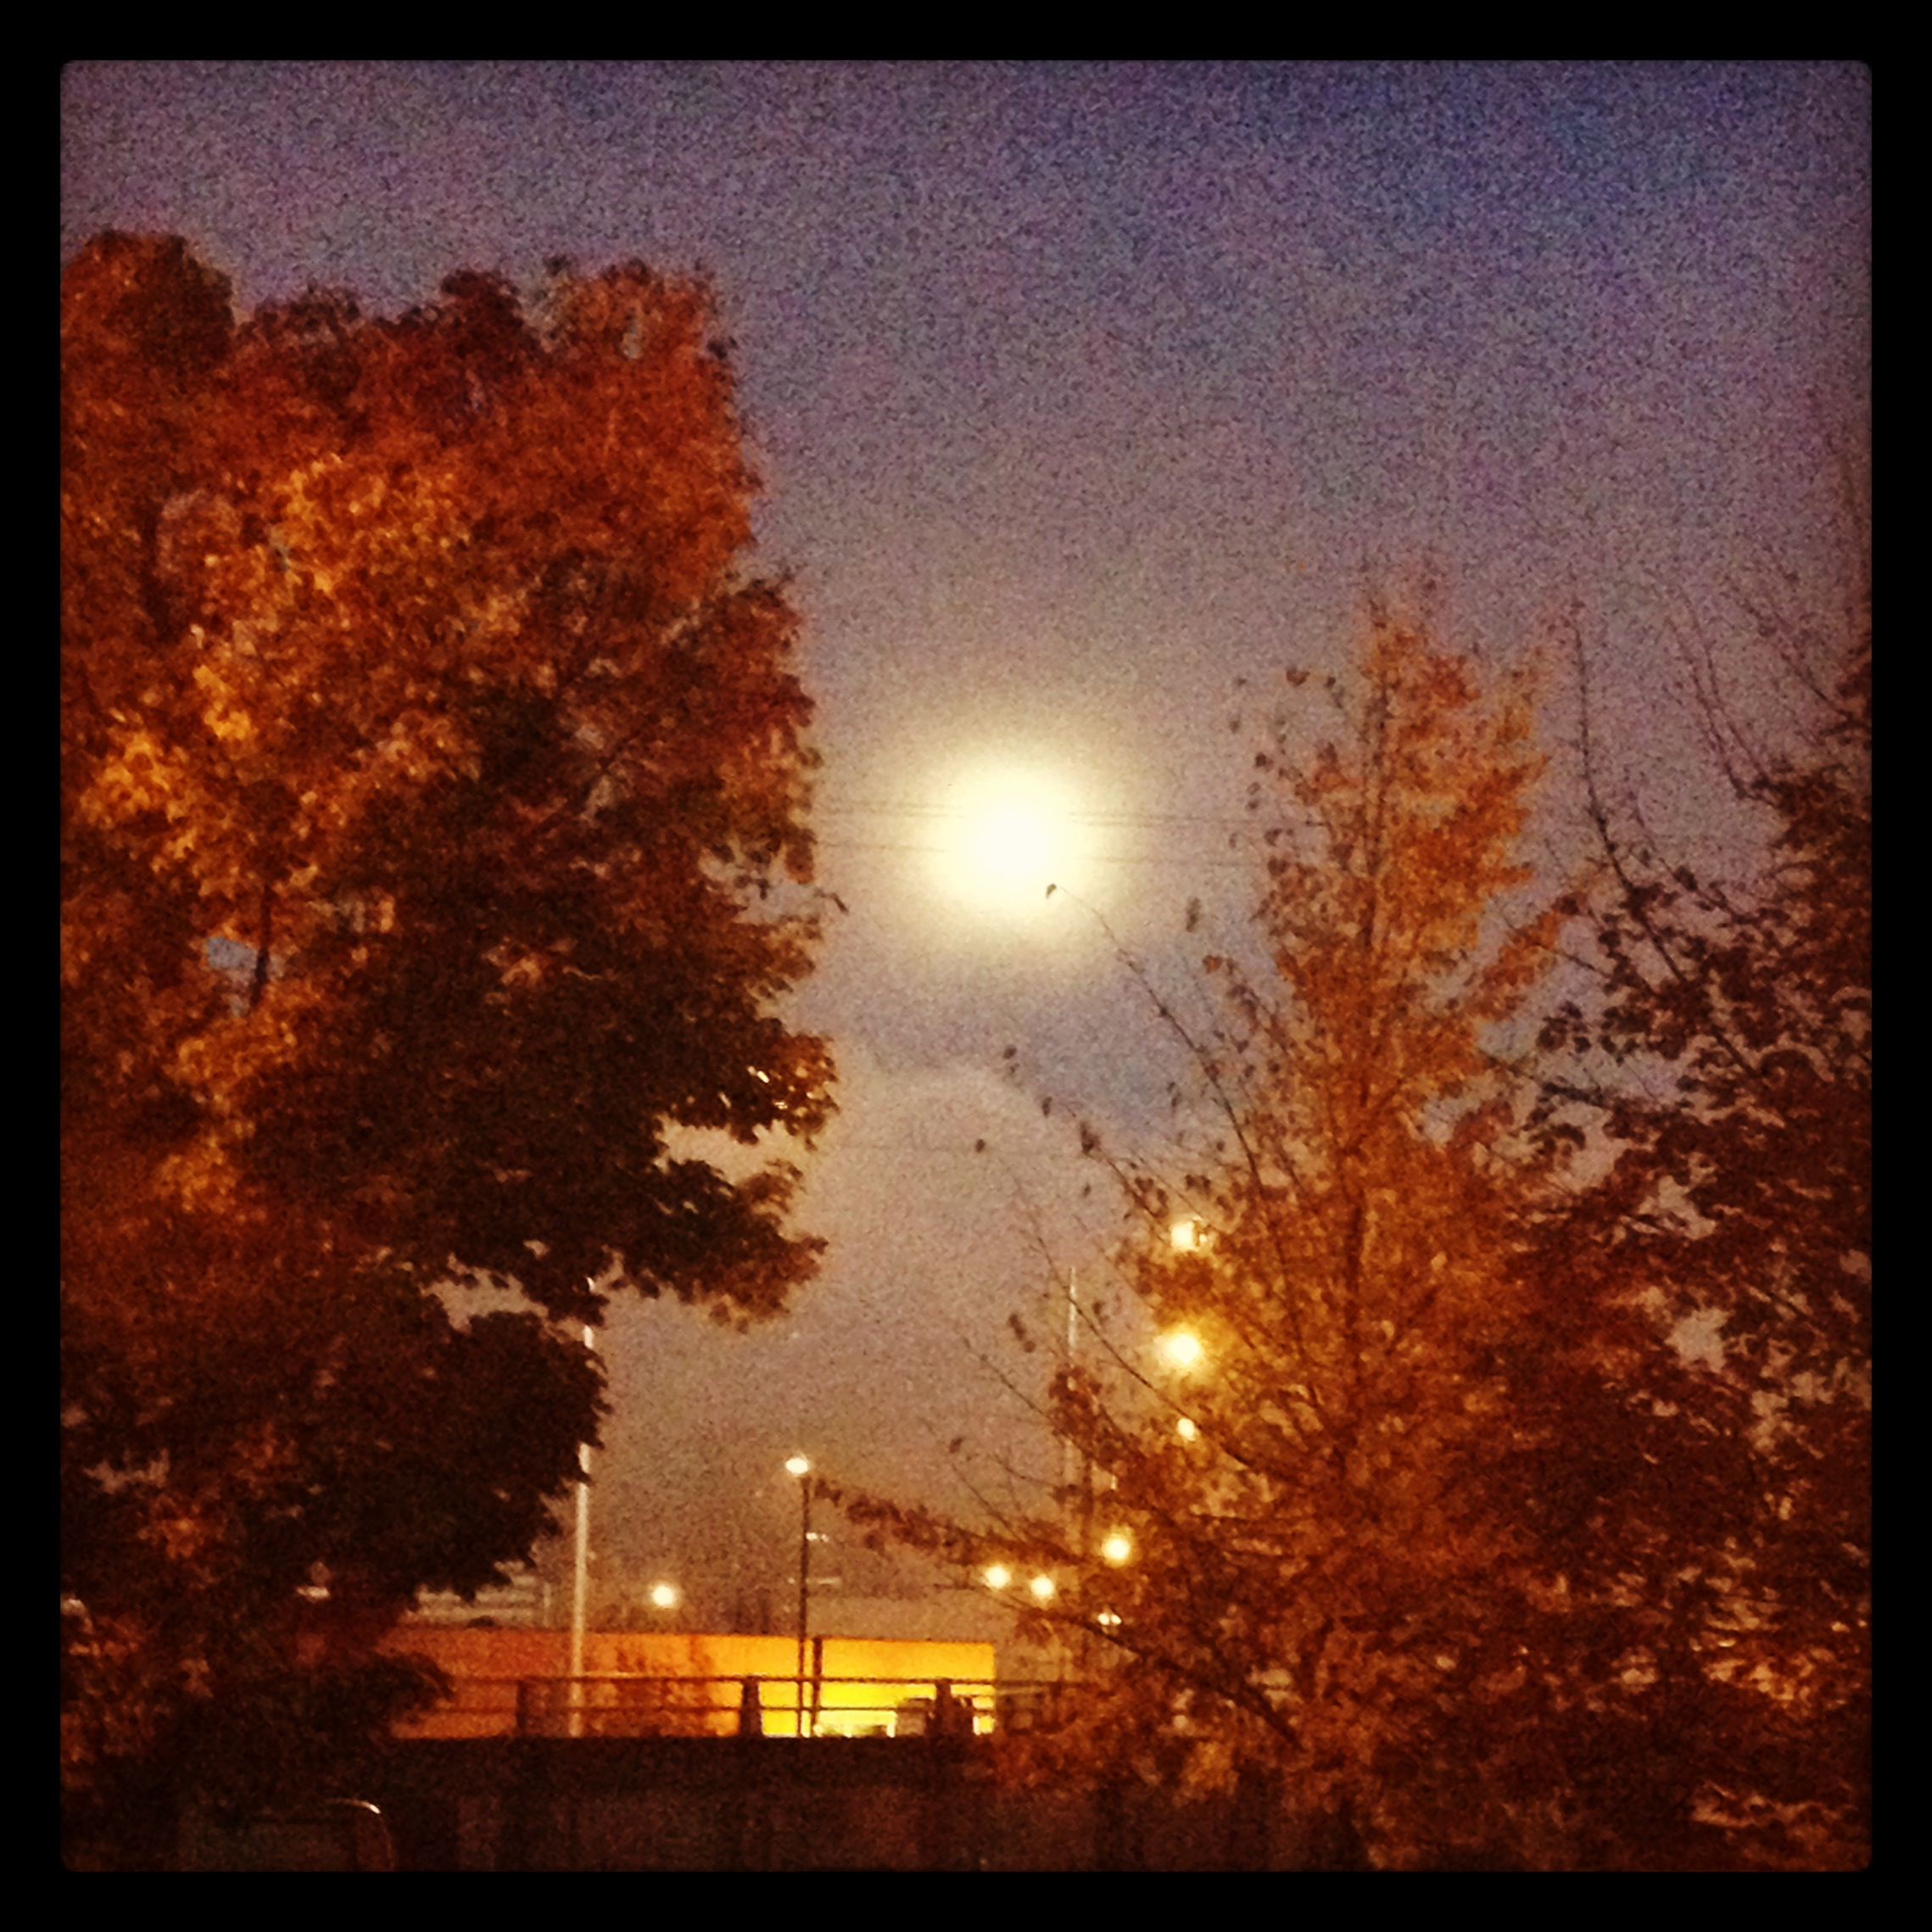 The full Moon about to sink into the fog...